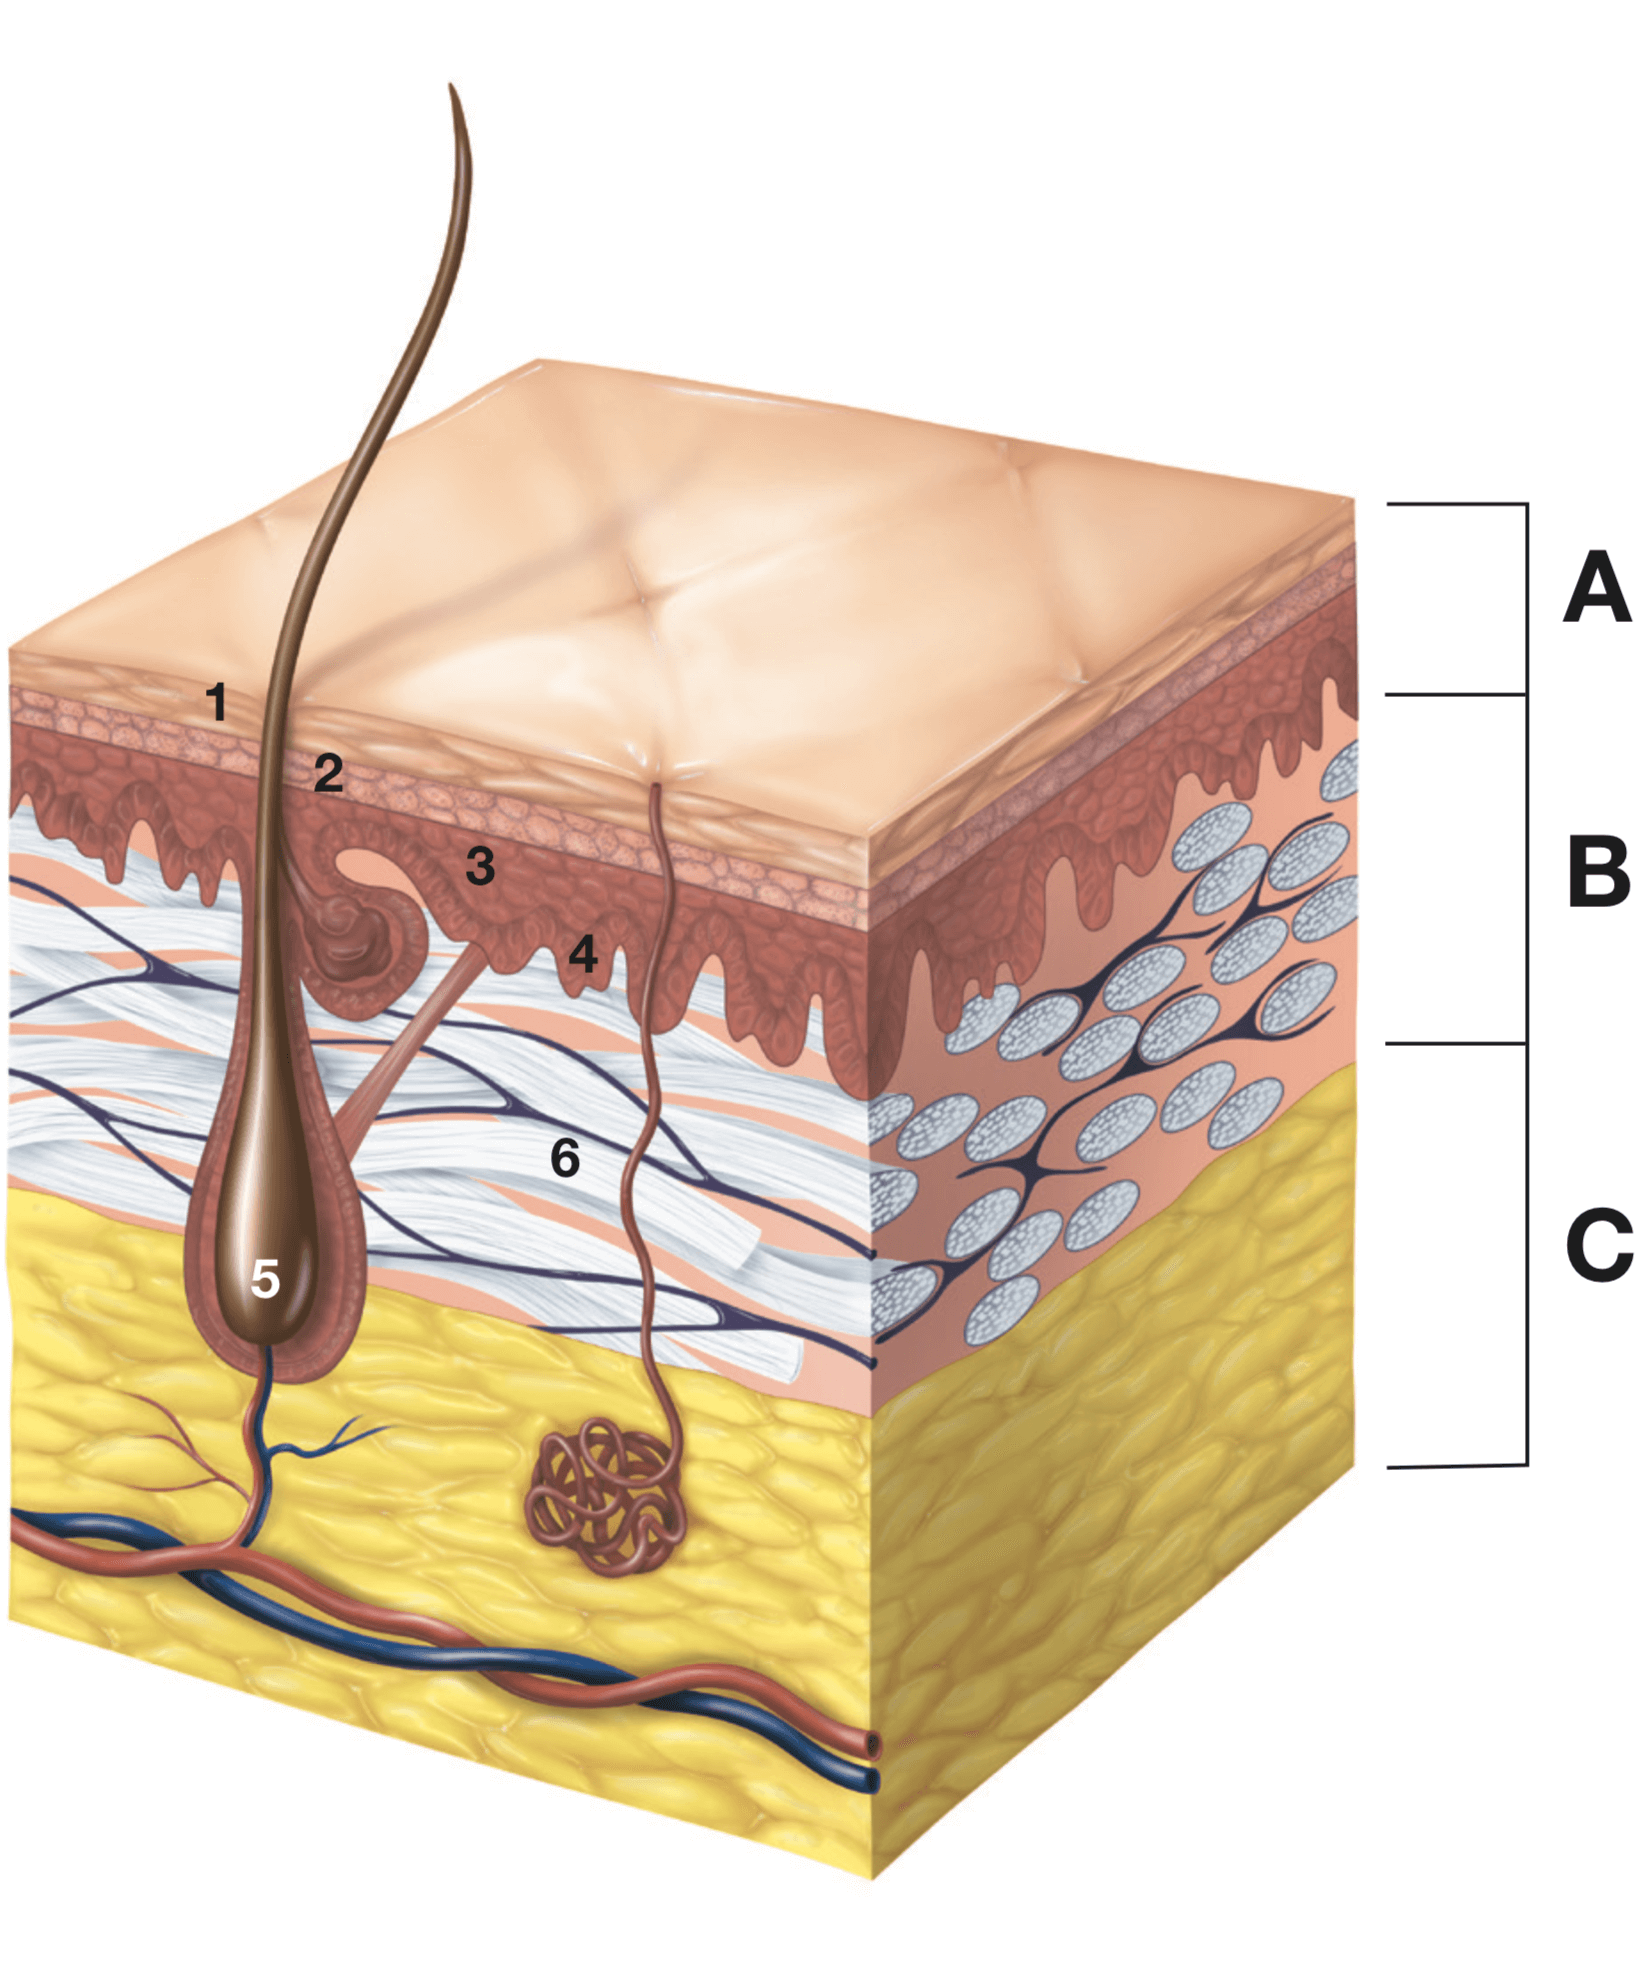 illustration of younger skin layers